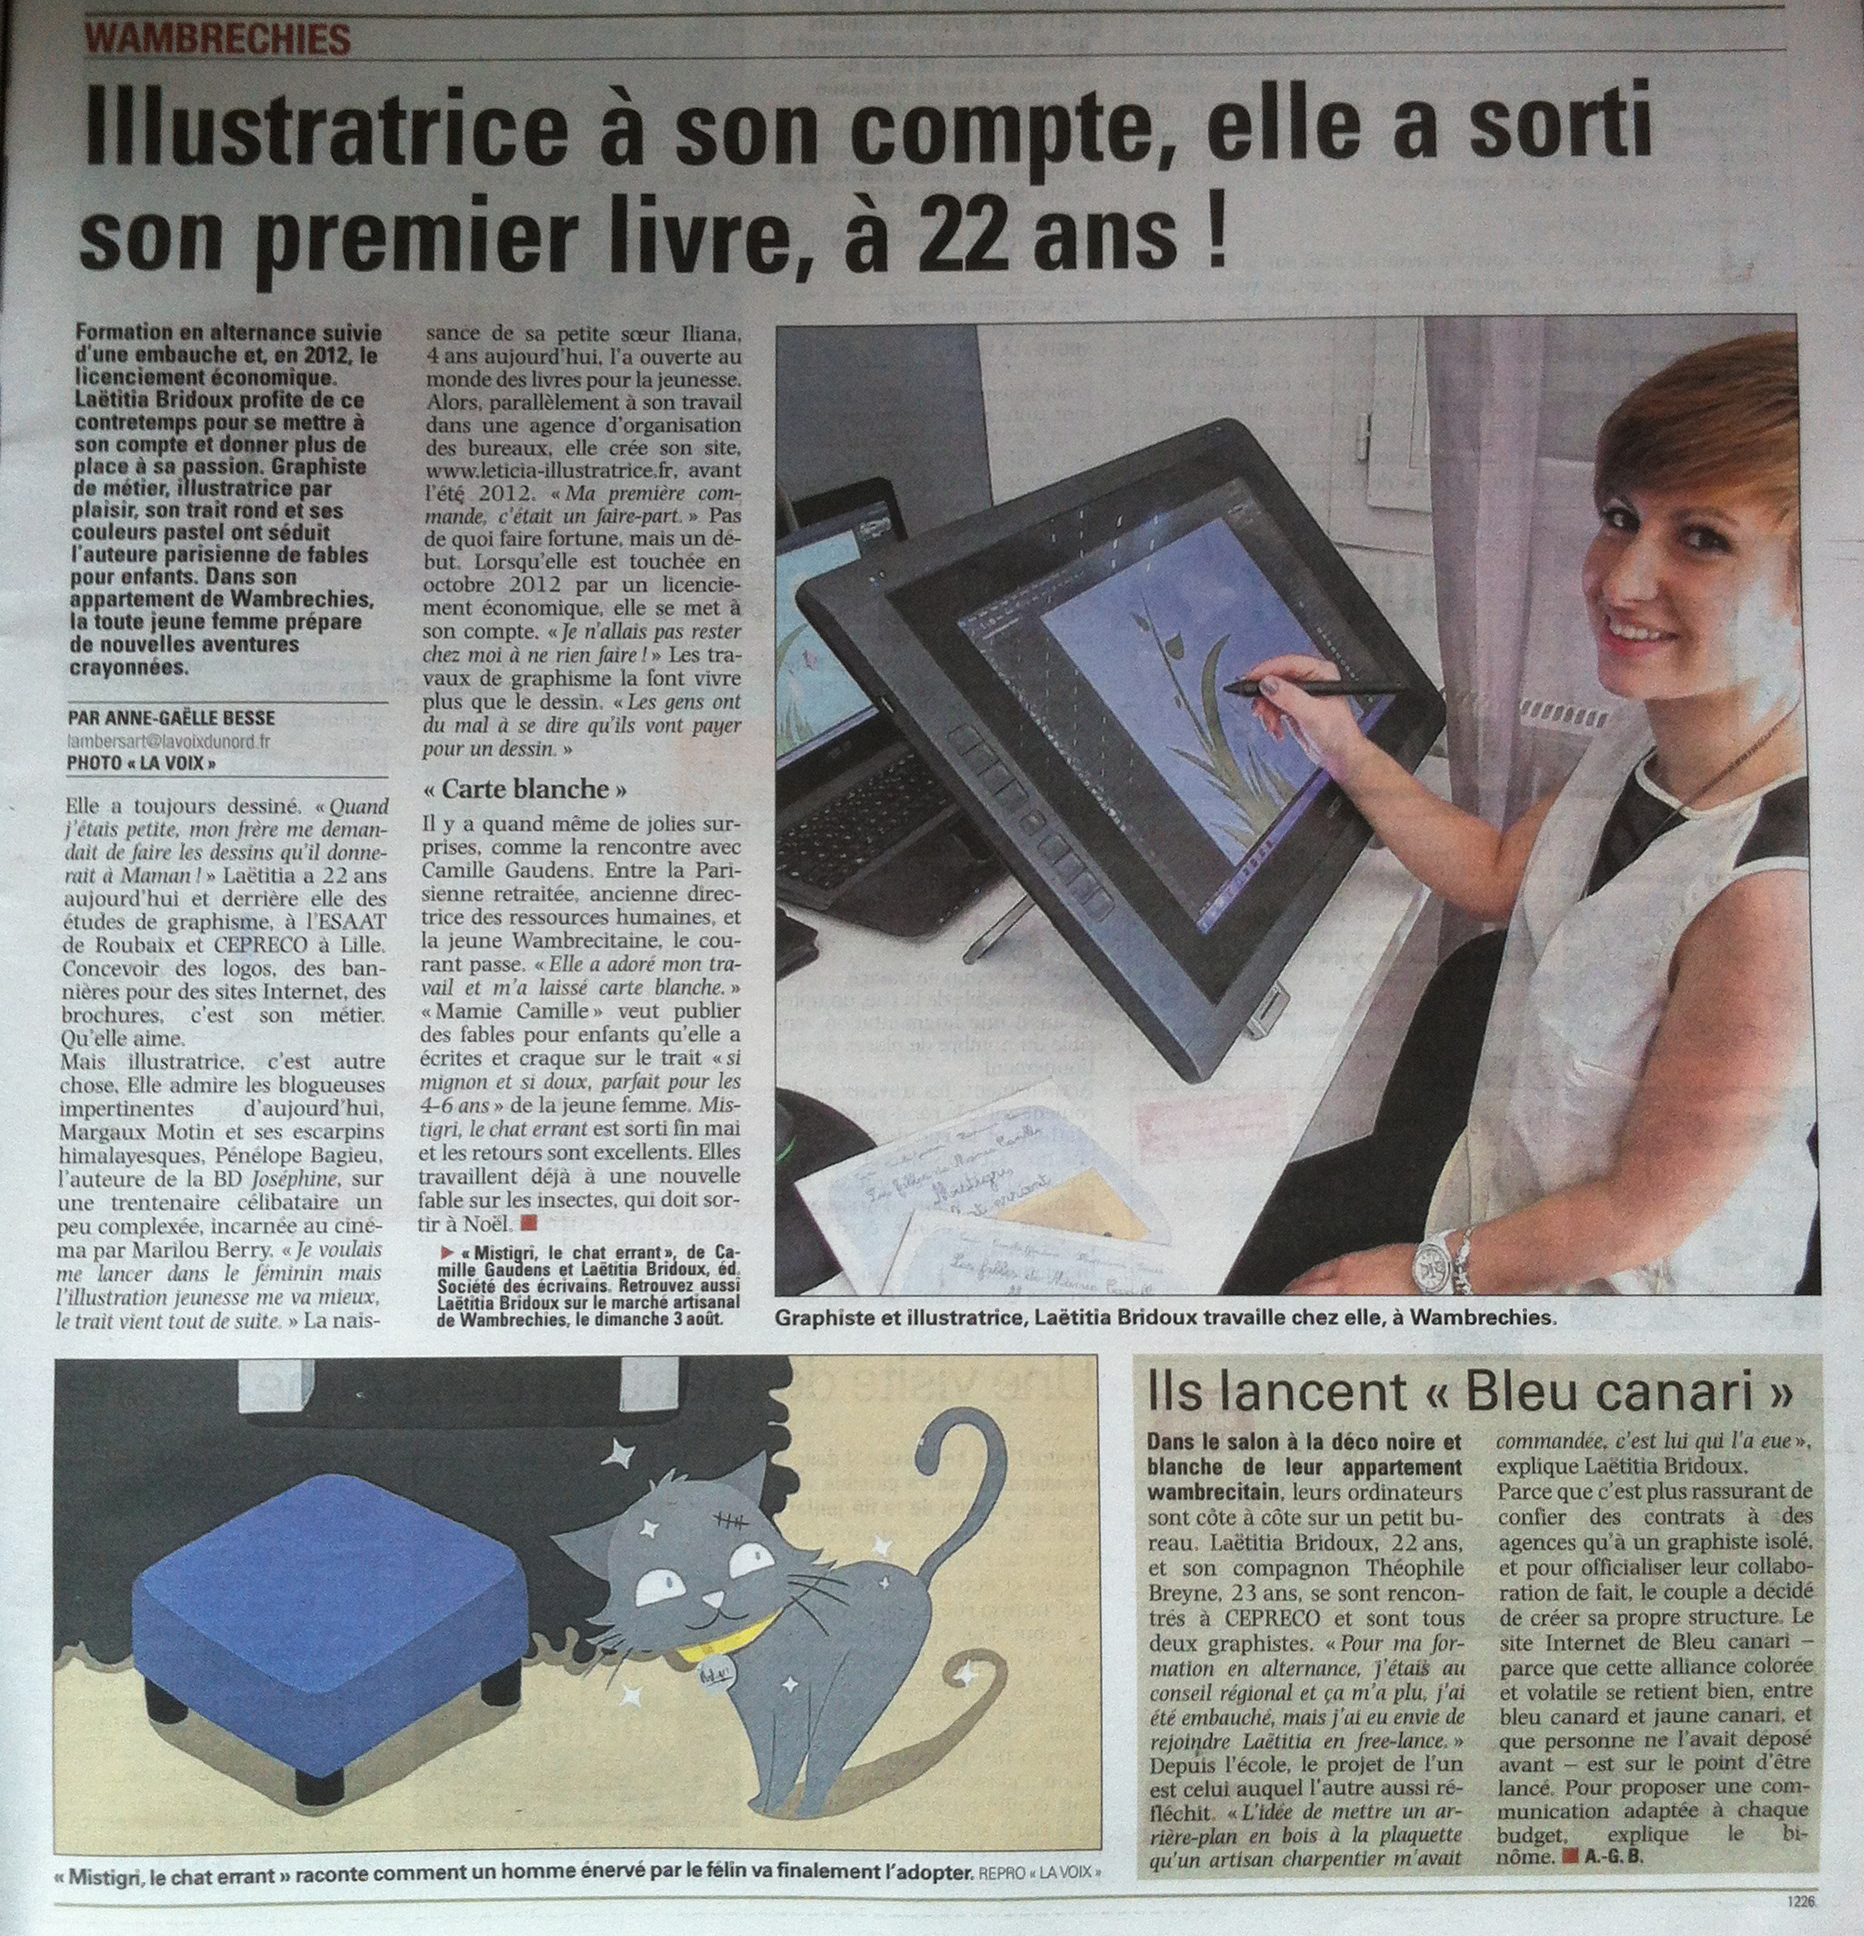 laetitia bridoux, illustratrice freelance, illustratrice lille